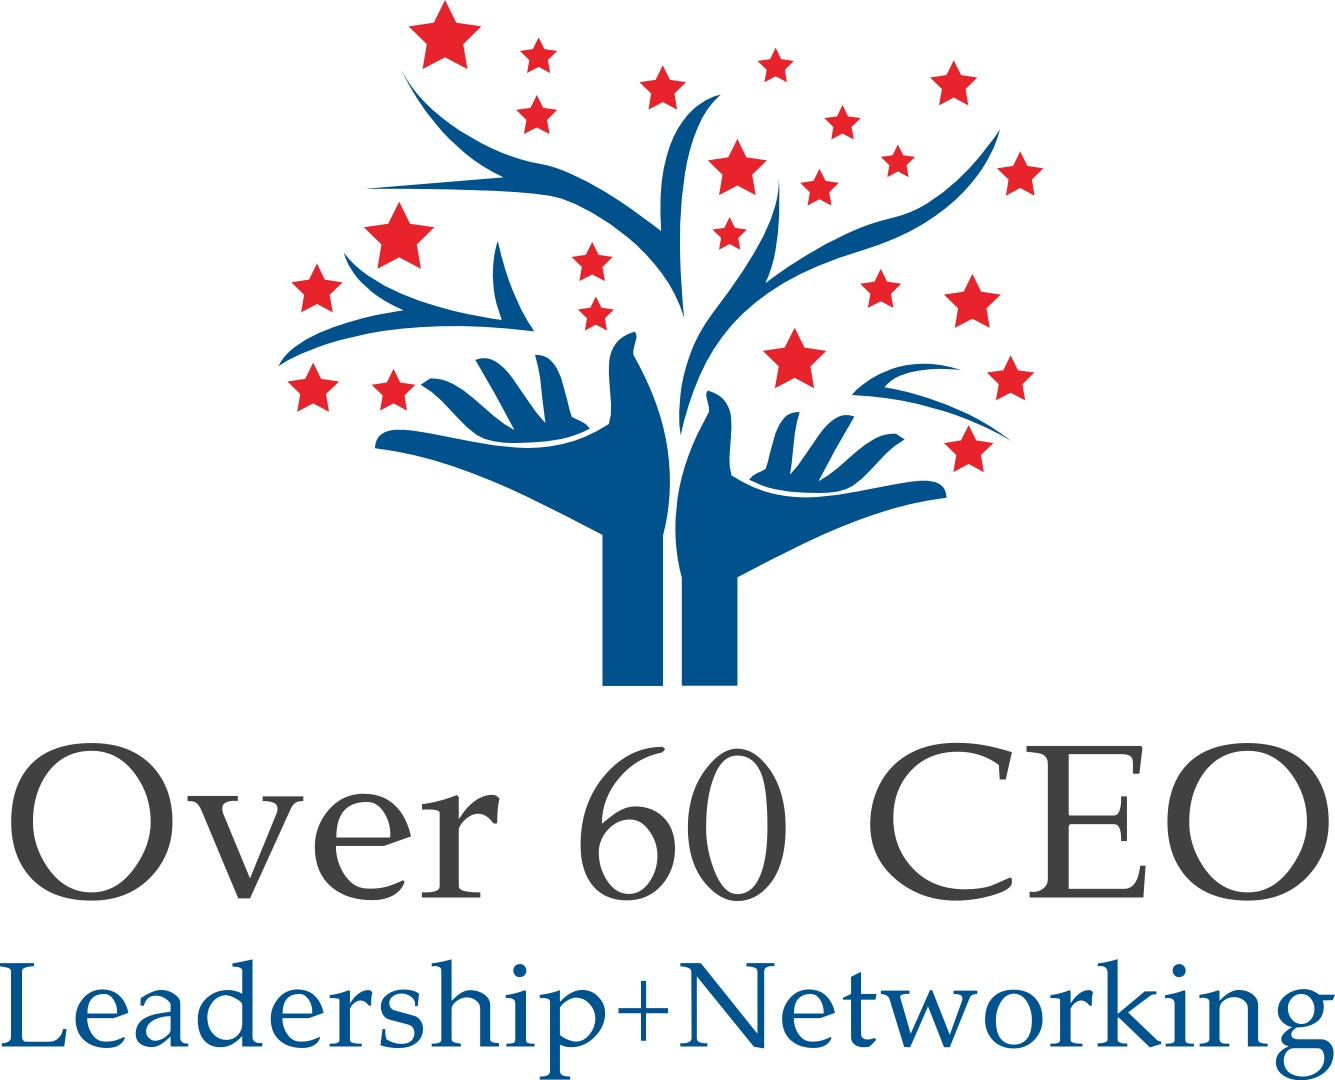 Over 60 CEO